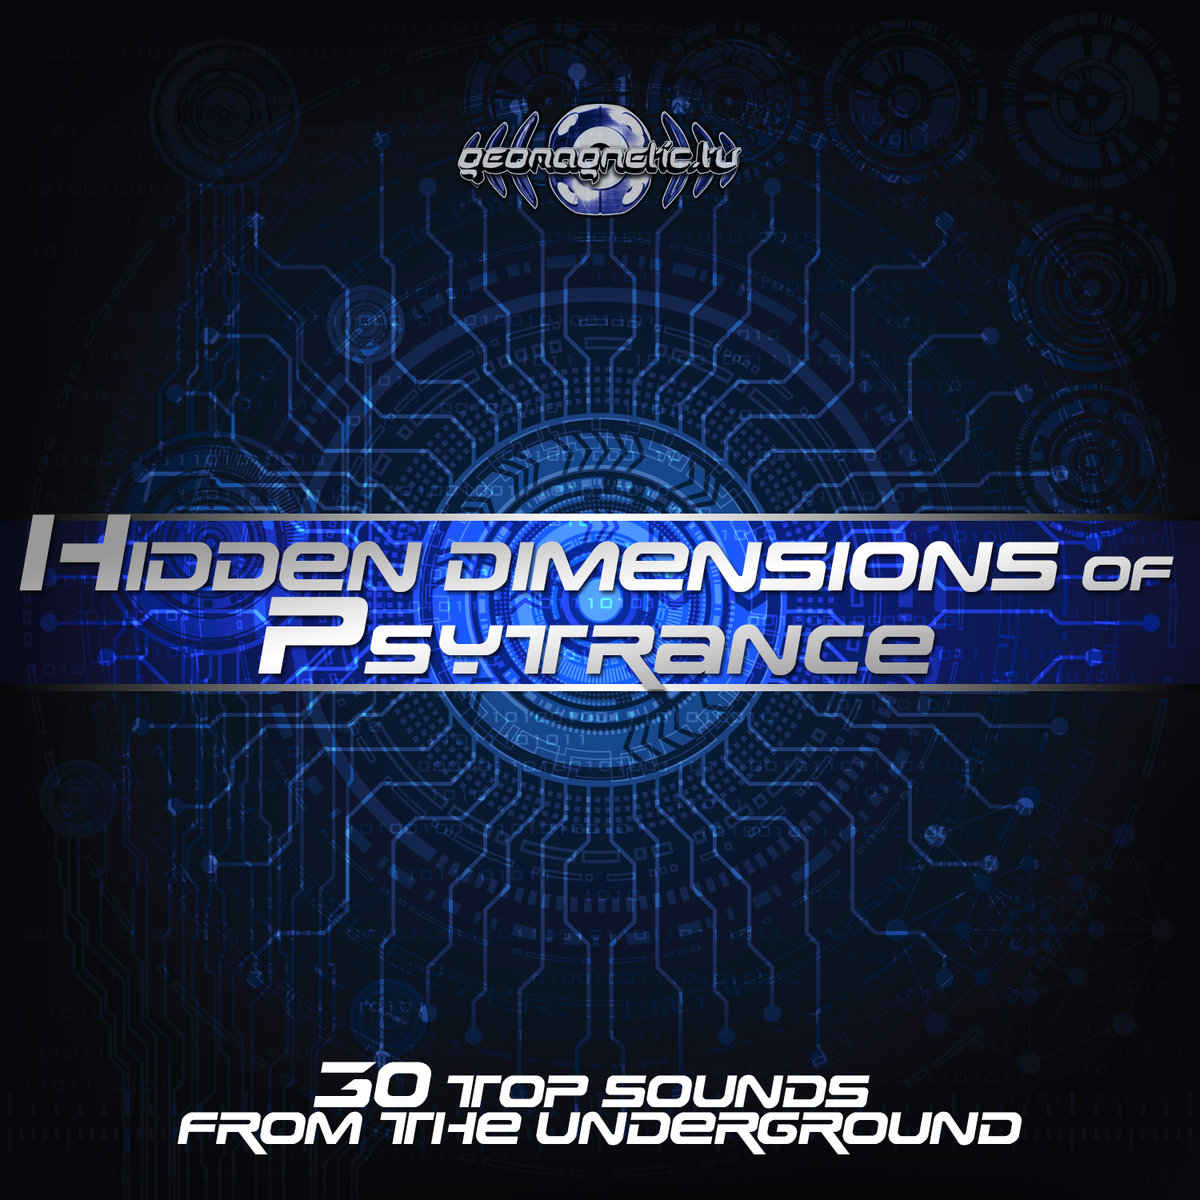 Various Artists - Hidden Dimensions of Psytrance (30 Top Sounds From The Underground) @ 'Various Artists - Hidden Dimensions of Psytrance (30 Top Sounds From The Underground)' album (electronic, goa)